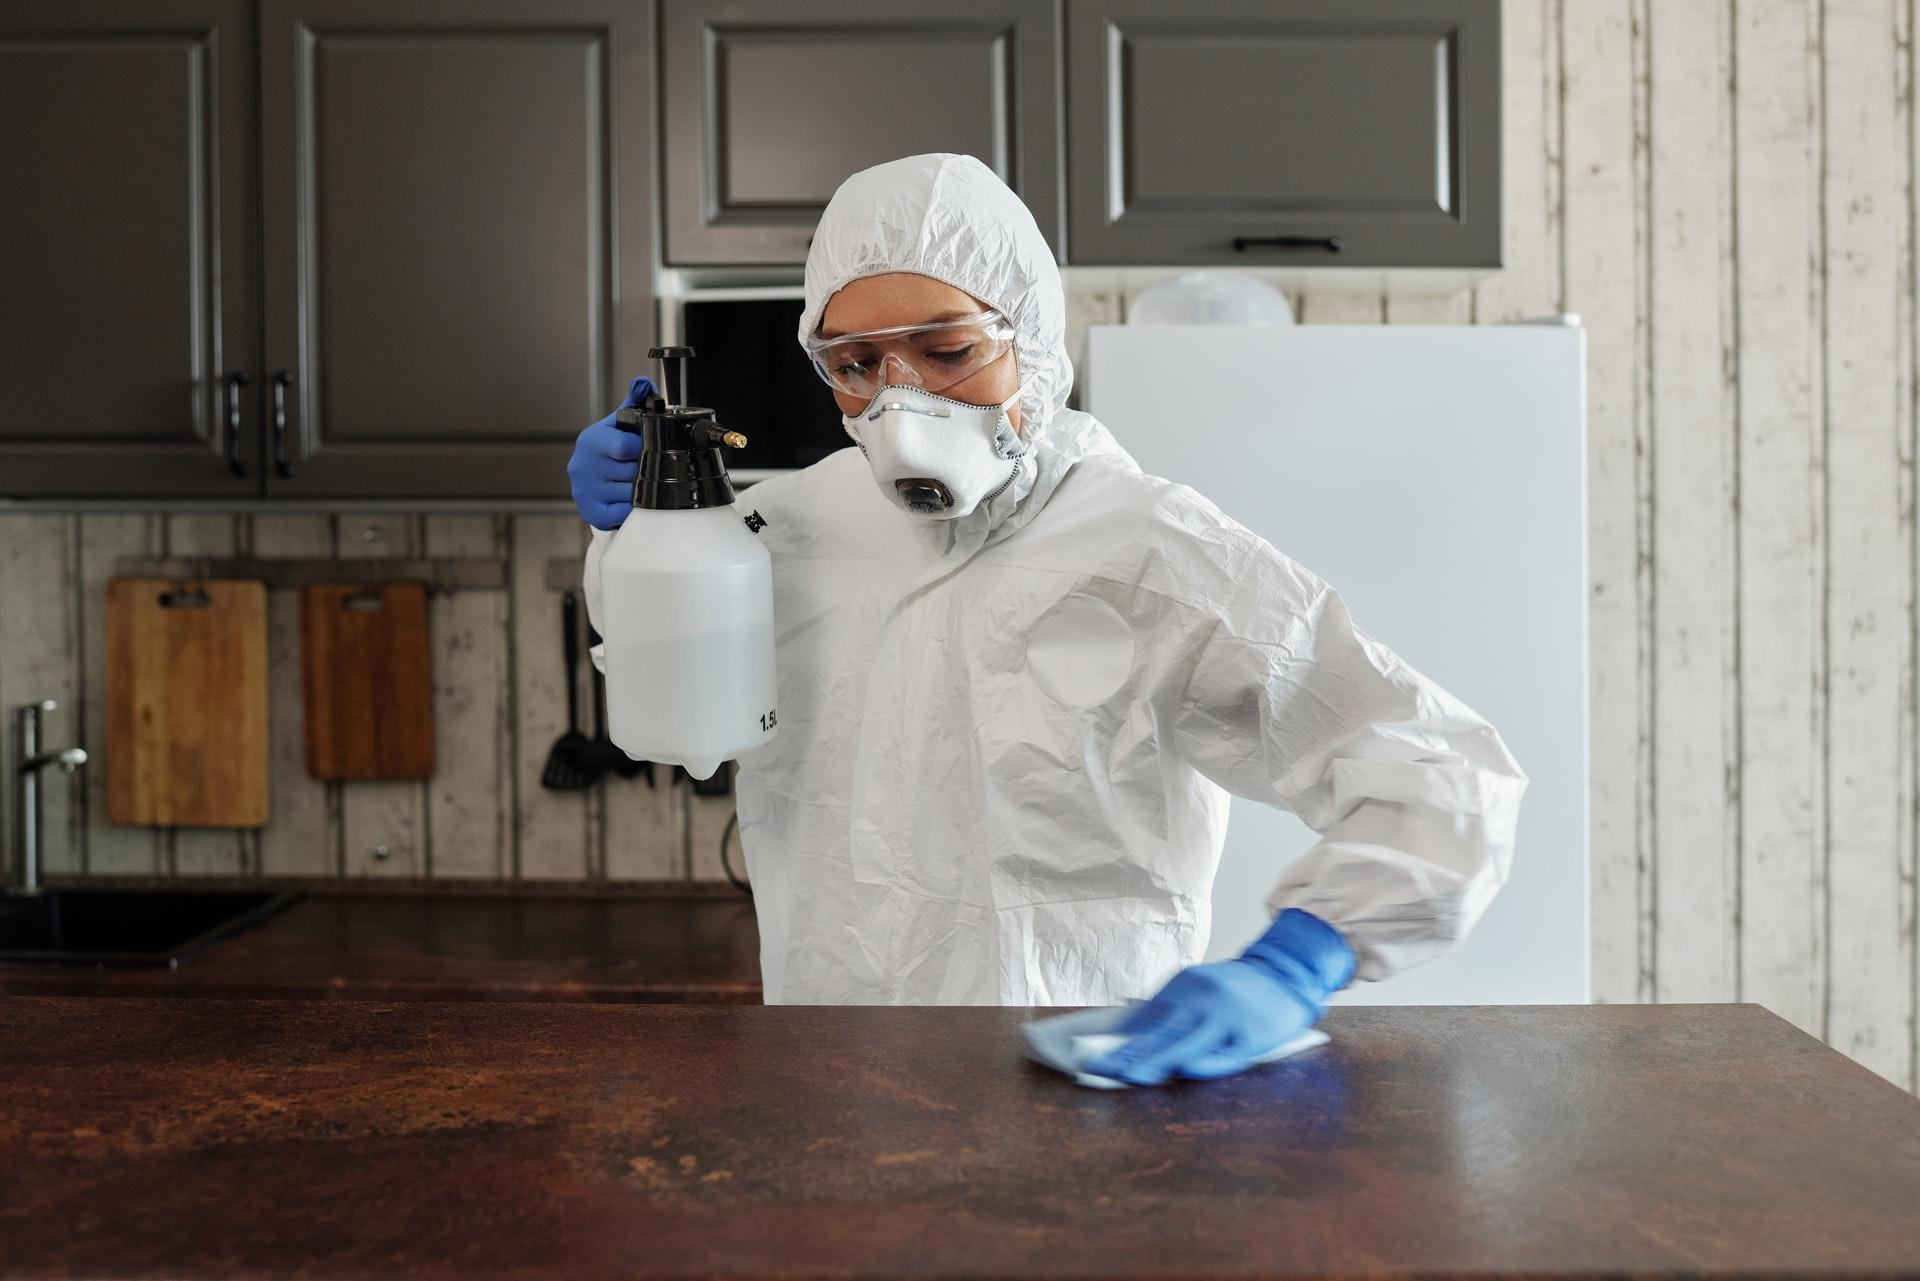 photo of person disinfecting table with liquid chemical.jpg